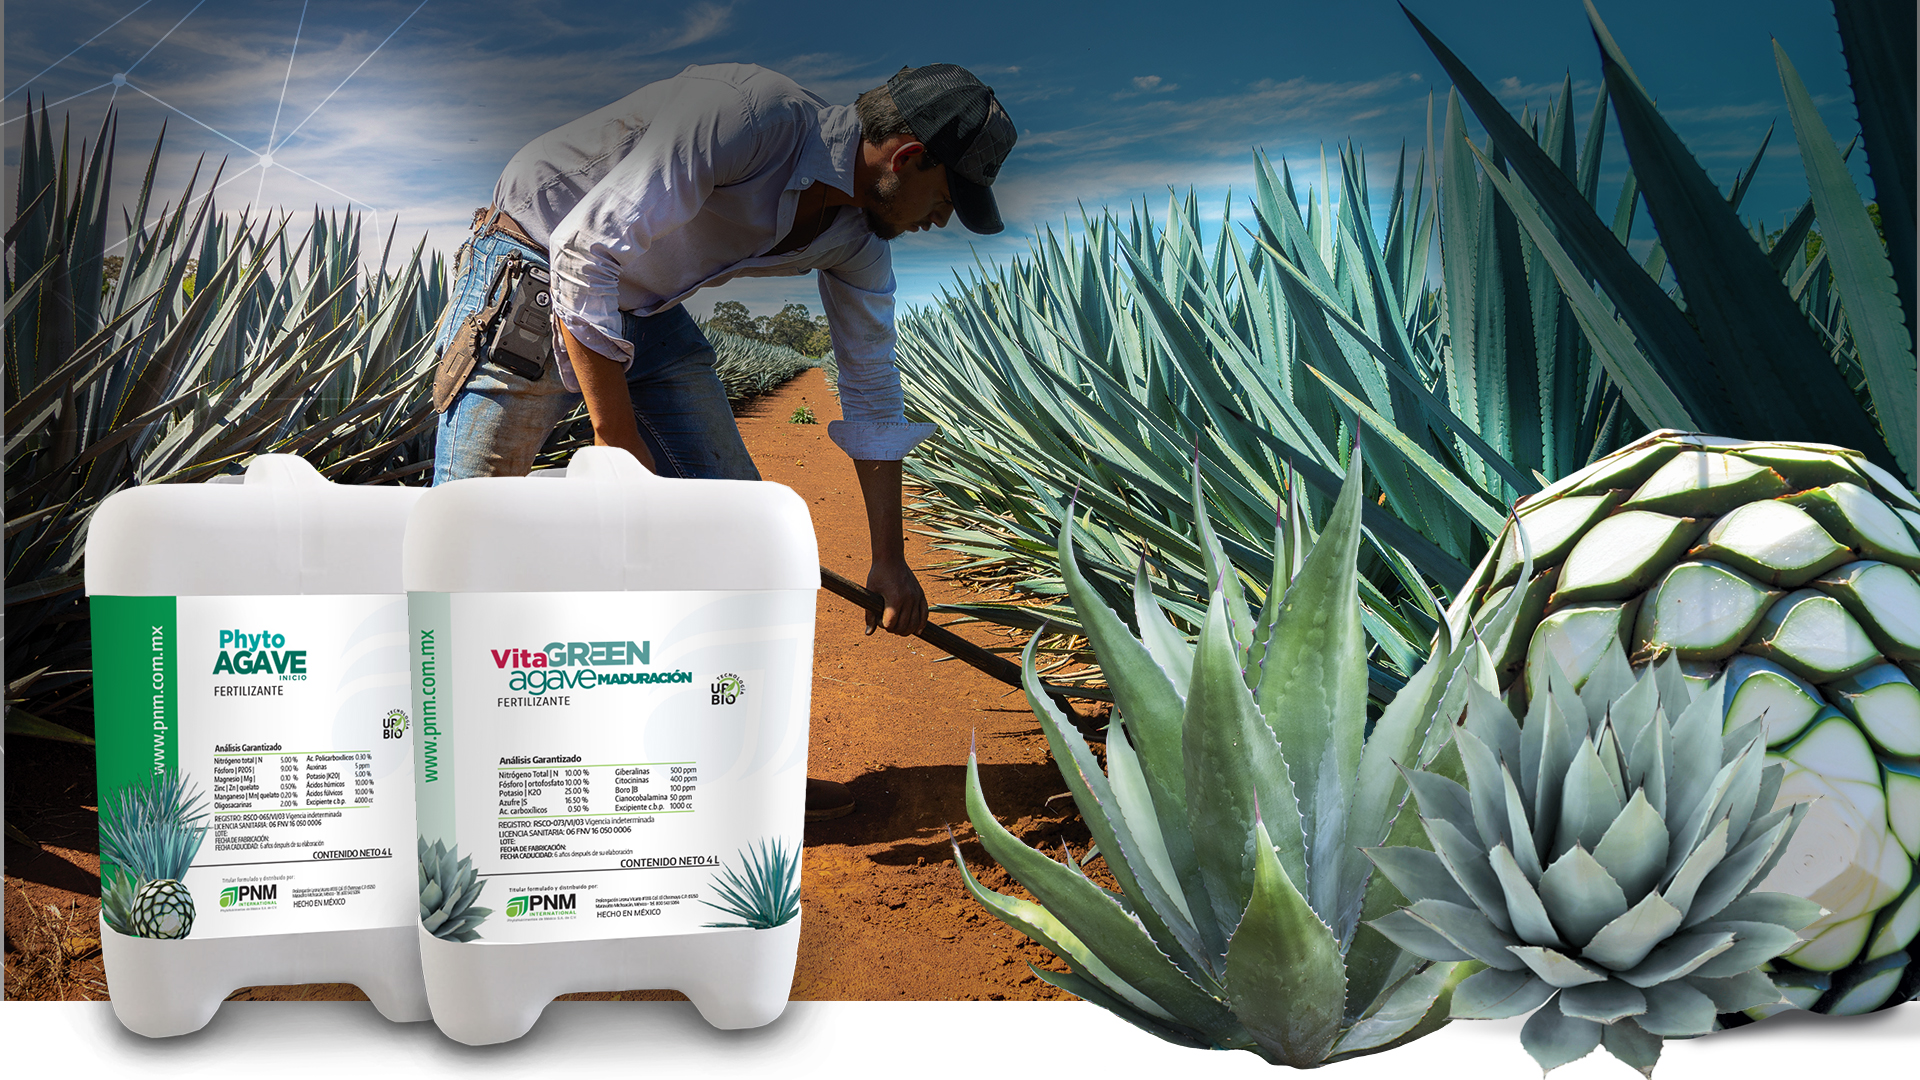 Phyto Agave